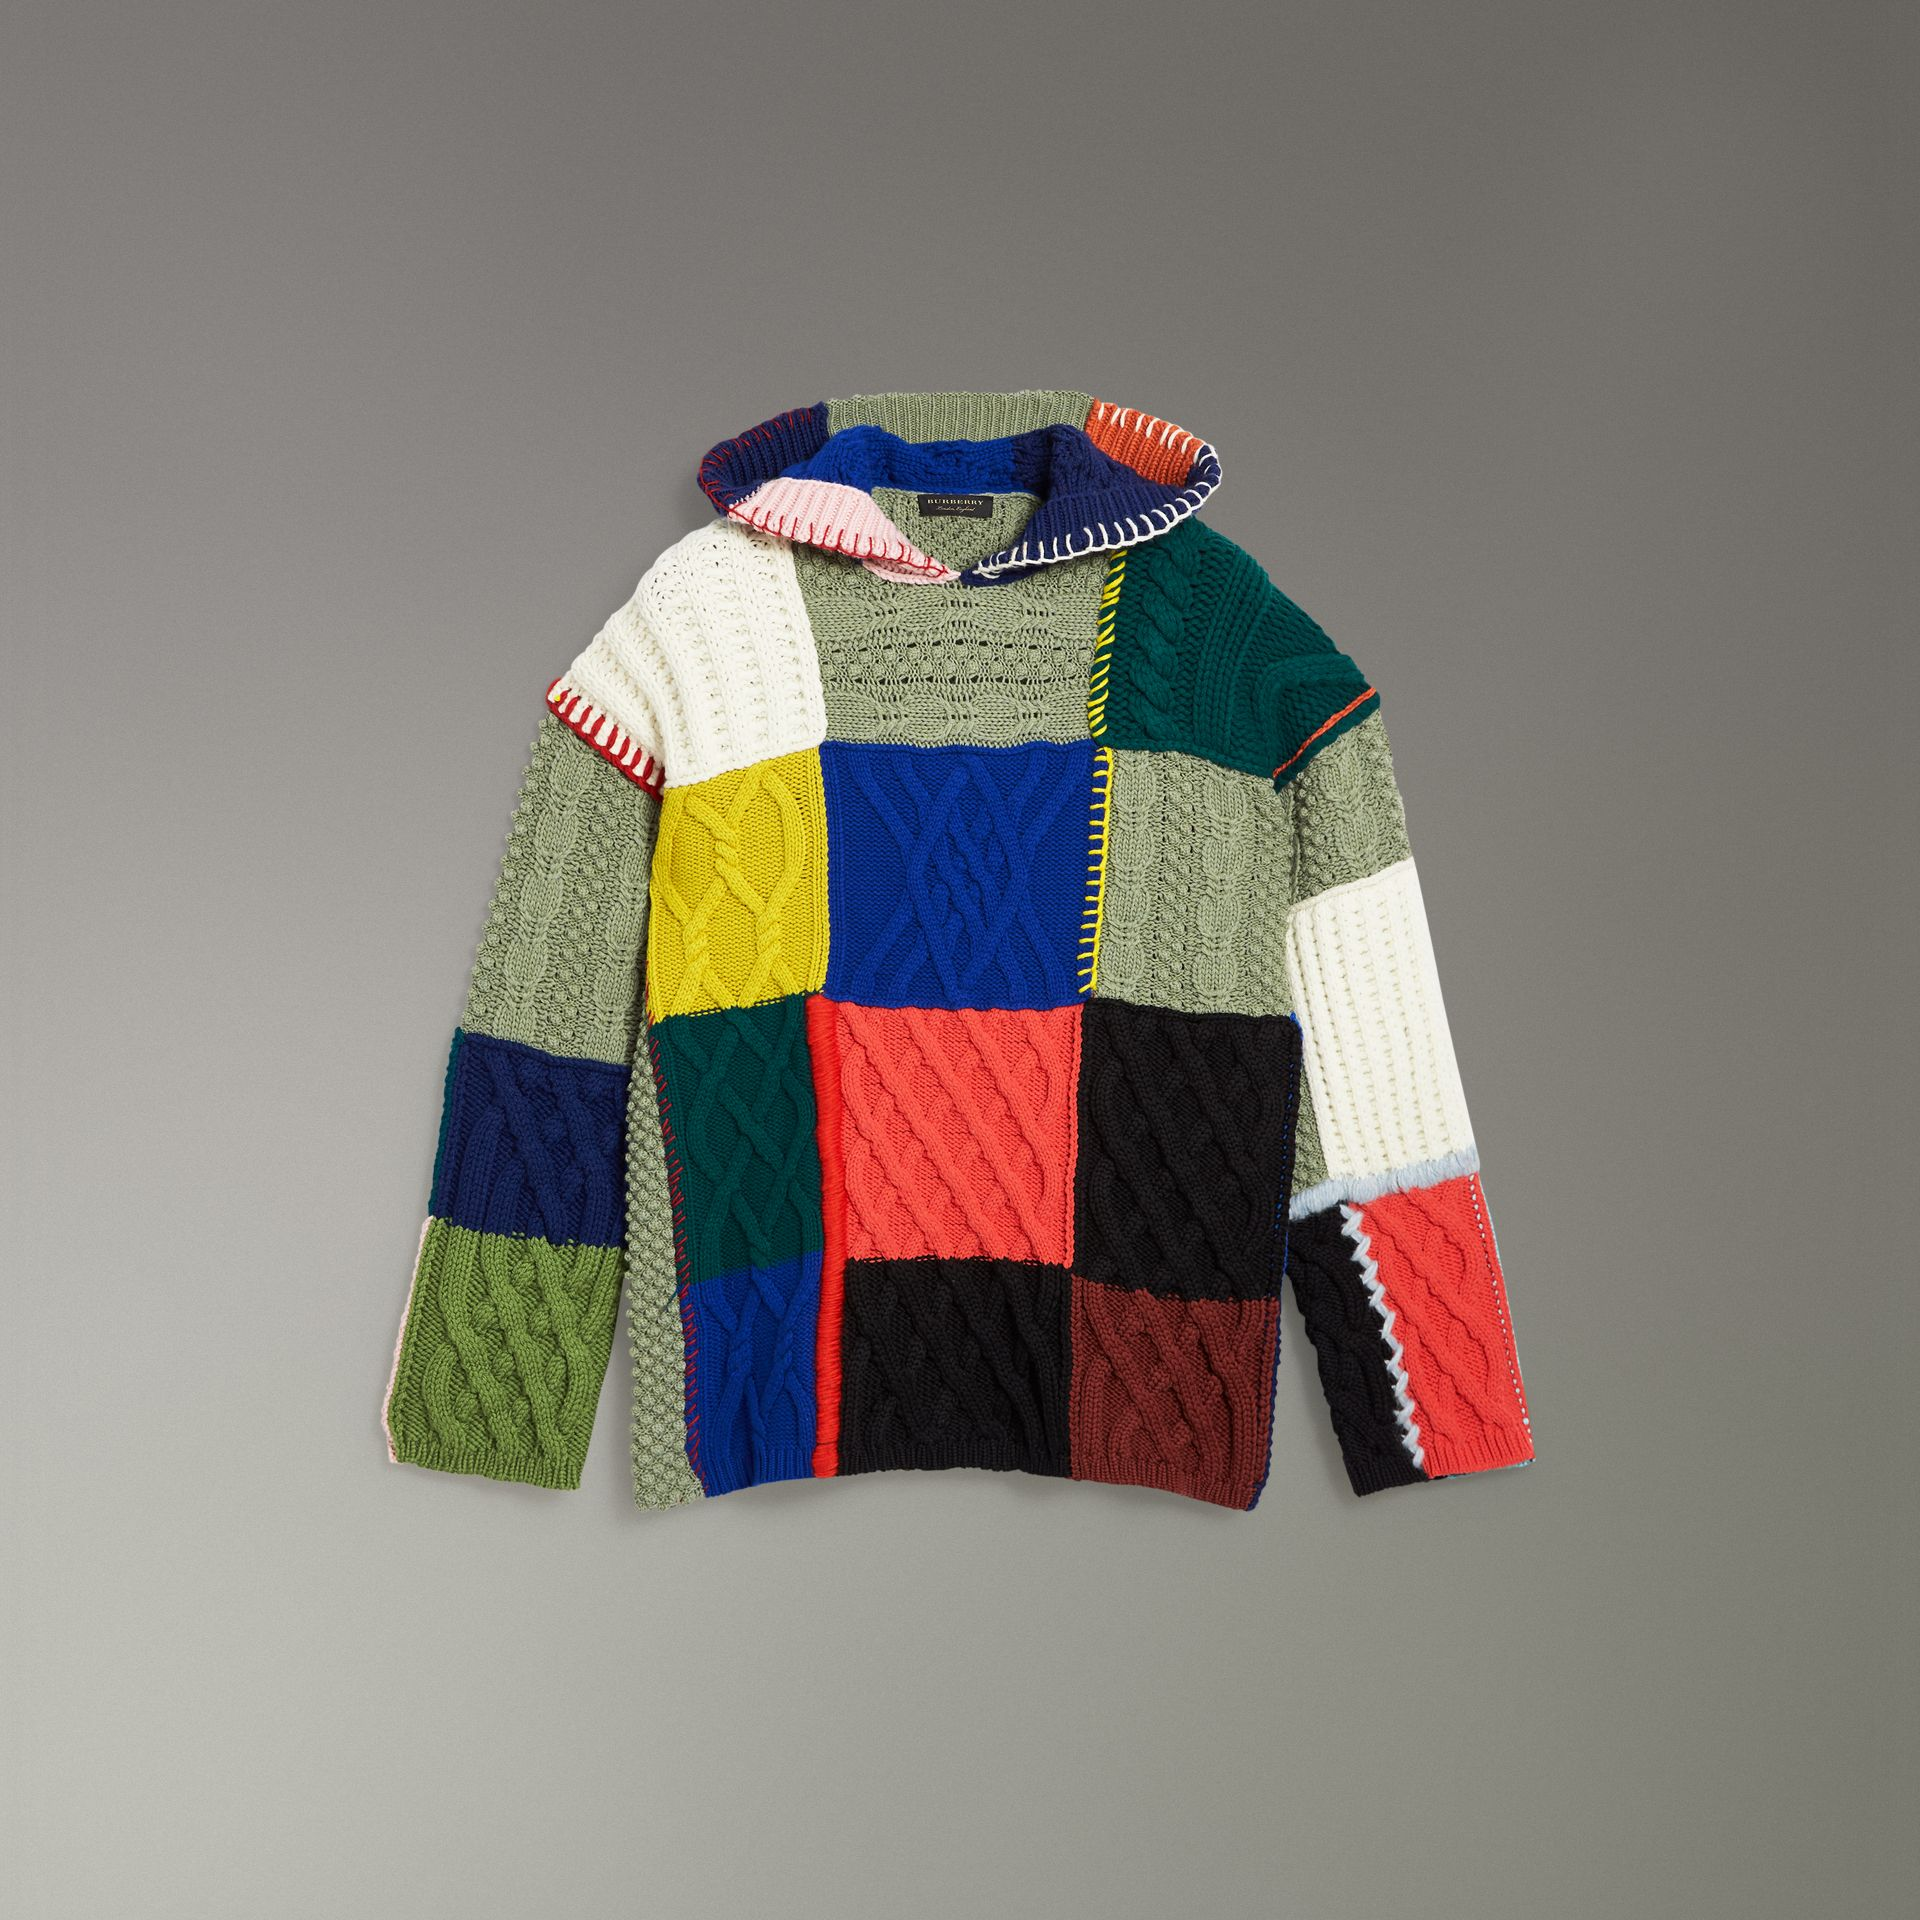 Patchwork Wool Cotton Blend Hoodie in Multicolour - Women | Burberry - gallery image 3